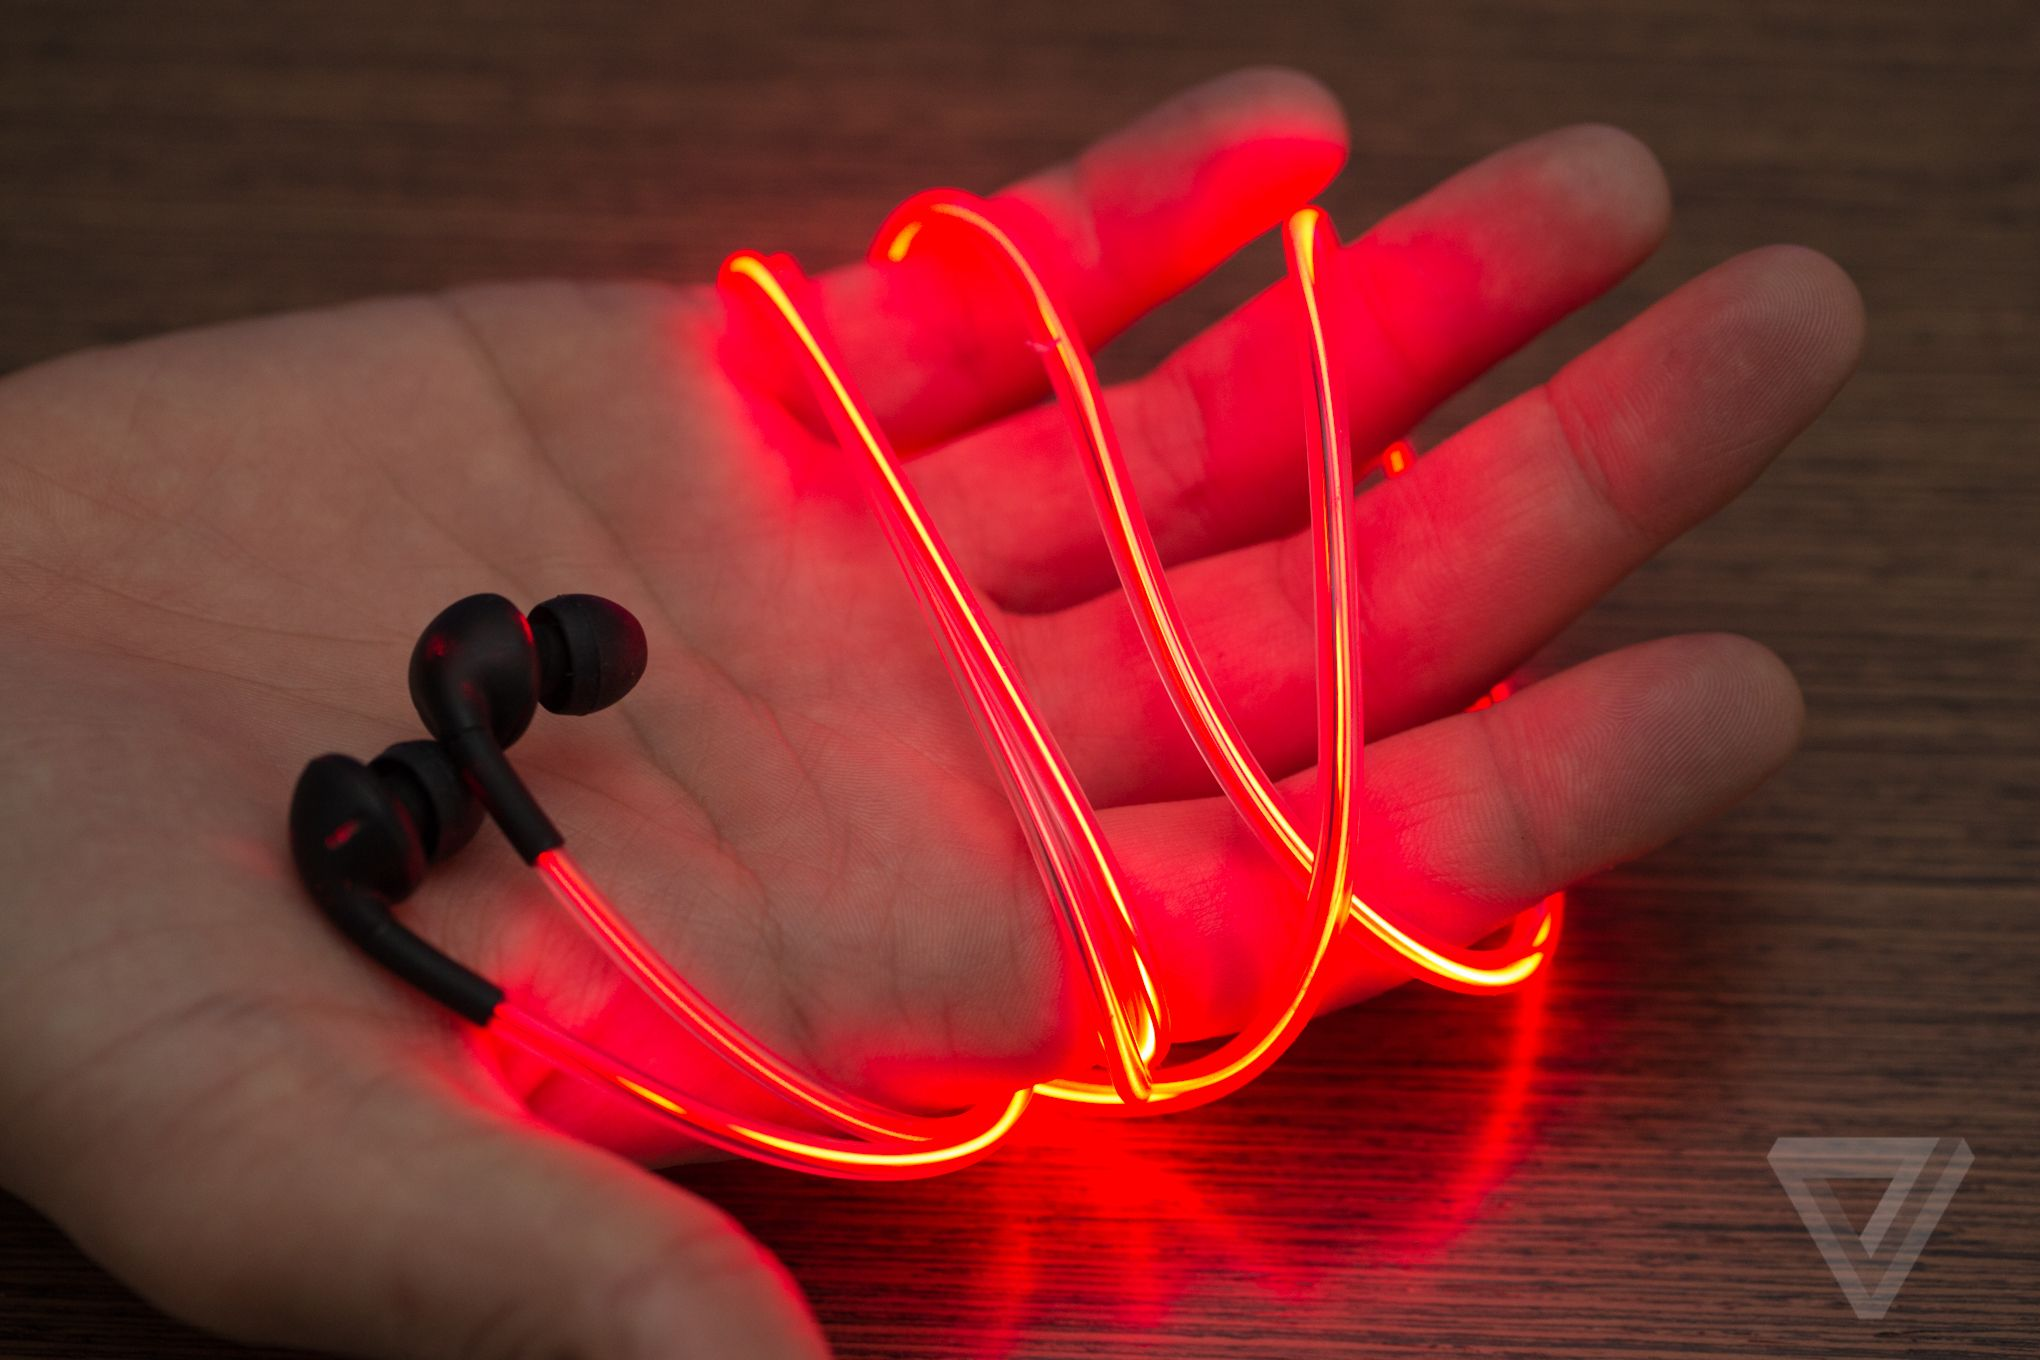 Up Close With Glow S Crazy Laser Light Earbuds Earbuds Cool Technology Tech Gifts